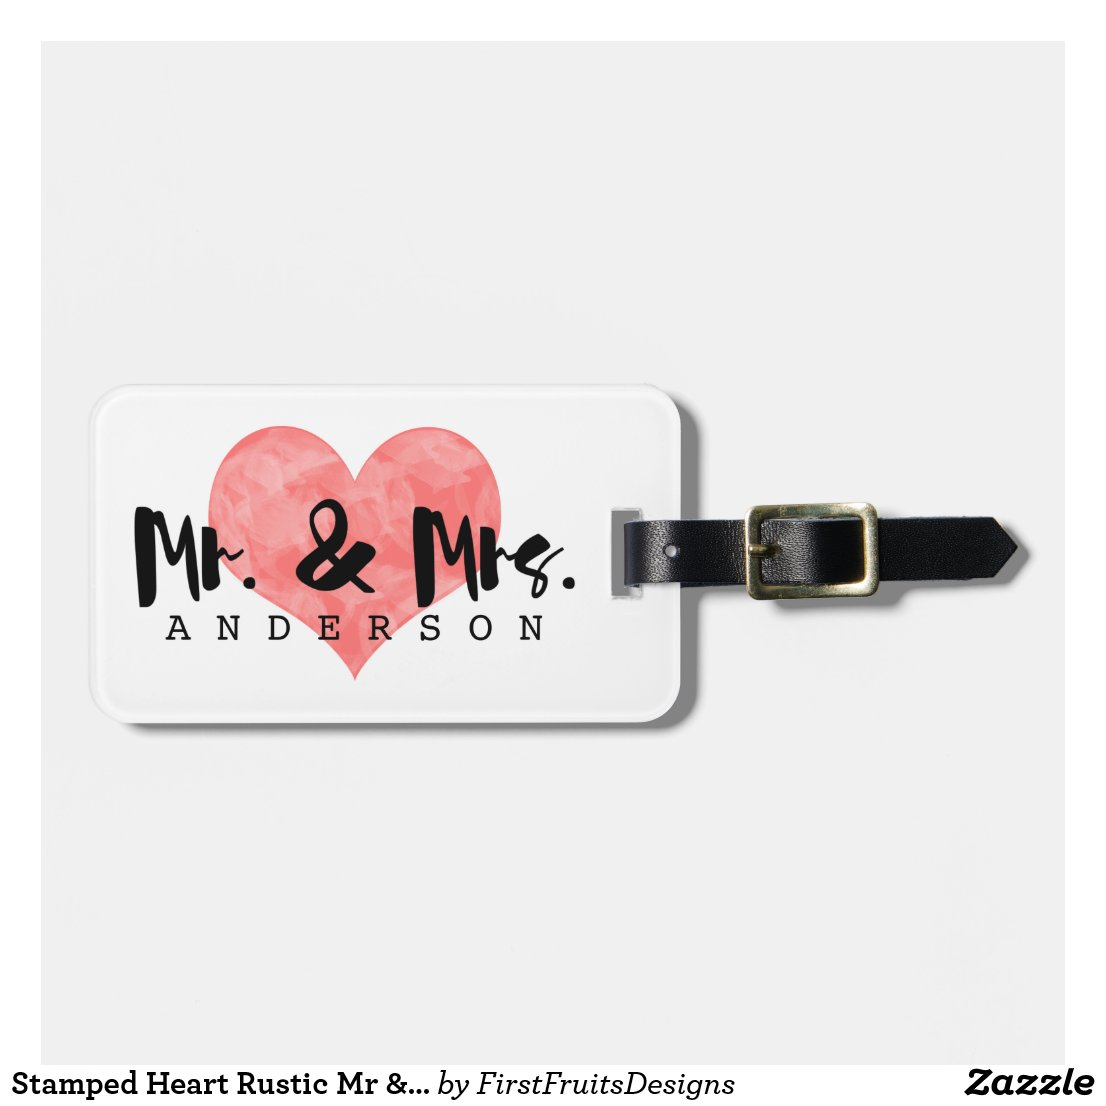 Stamped Heart Rustic Mr & Mrs Monogram Luggage Tag